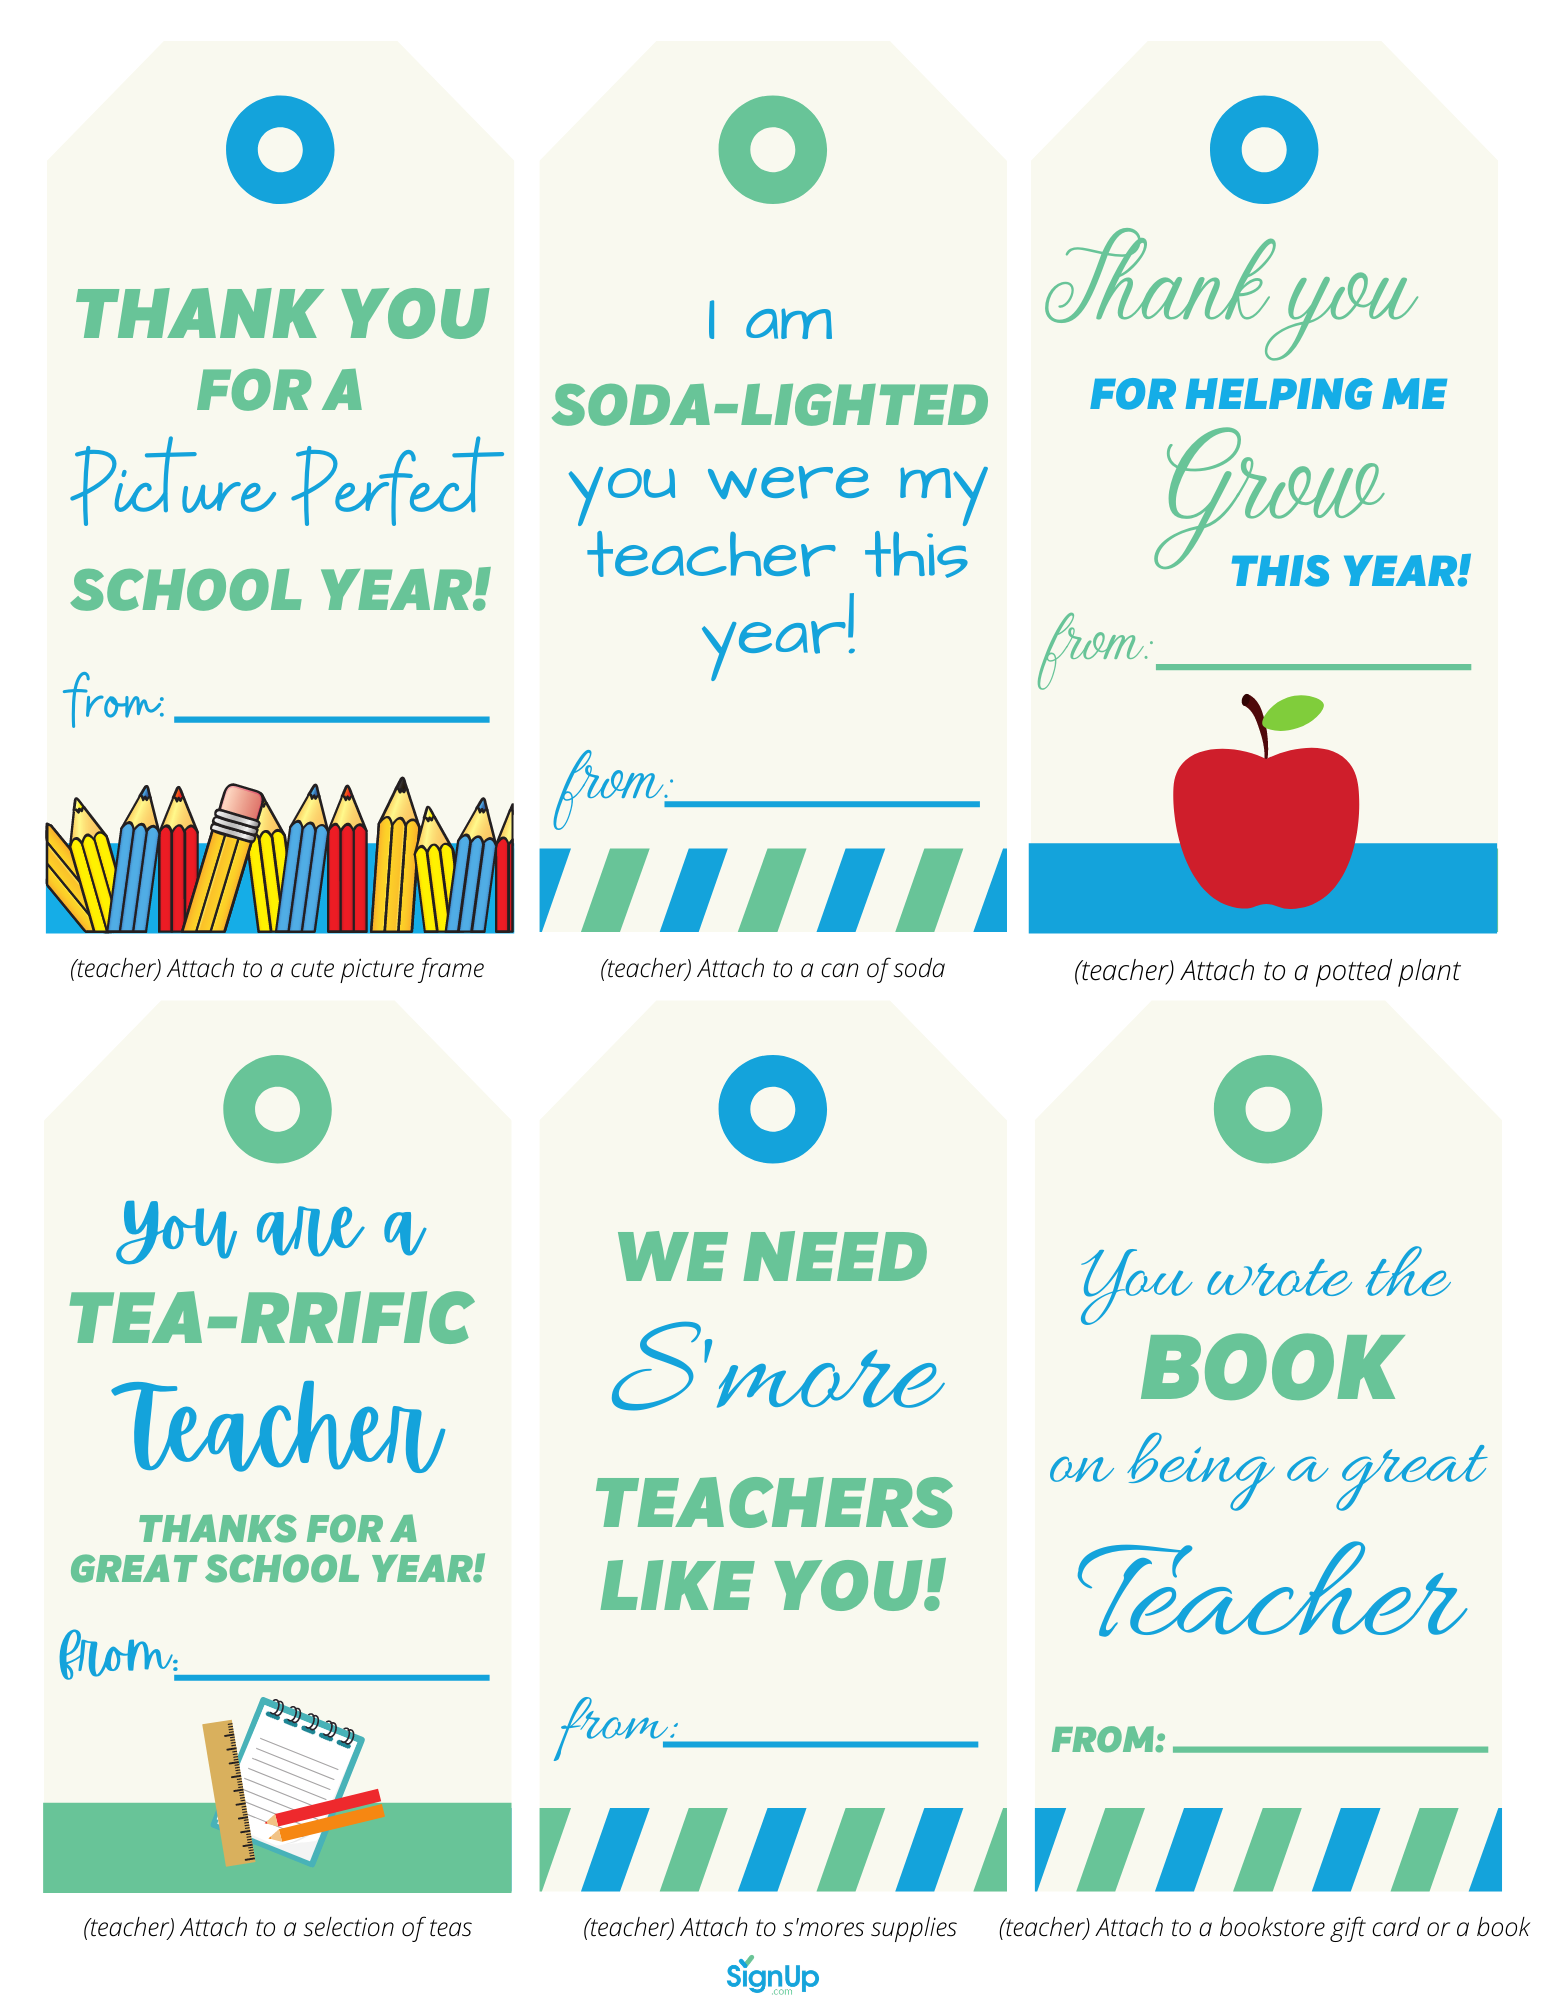 End-of-school thank you notes for teachers